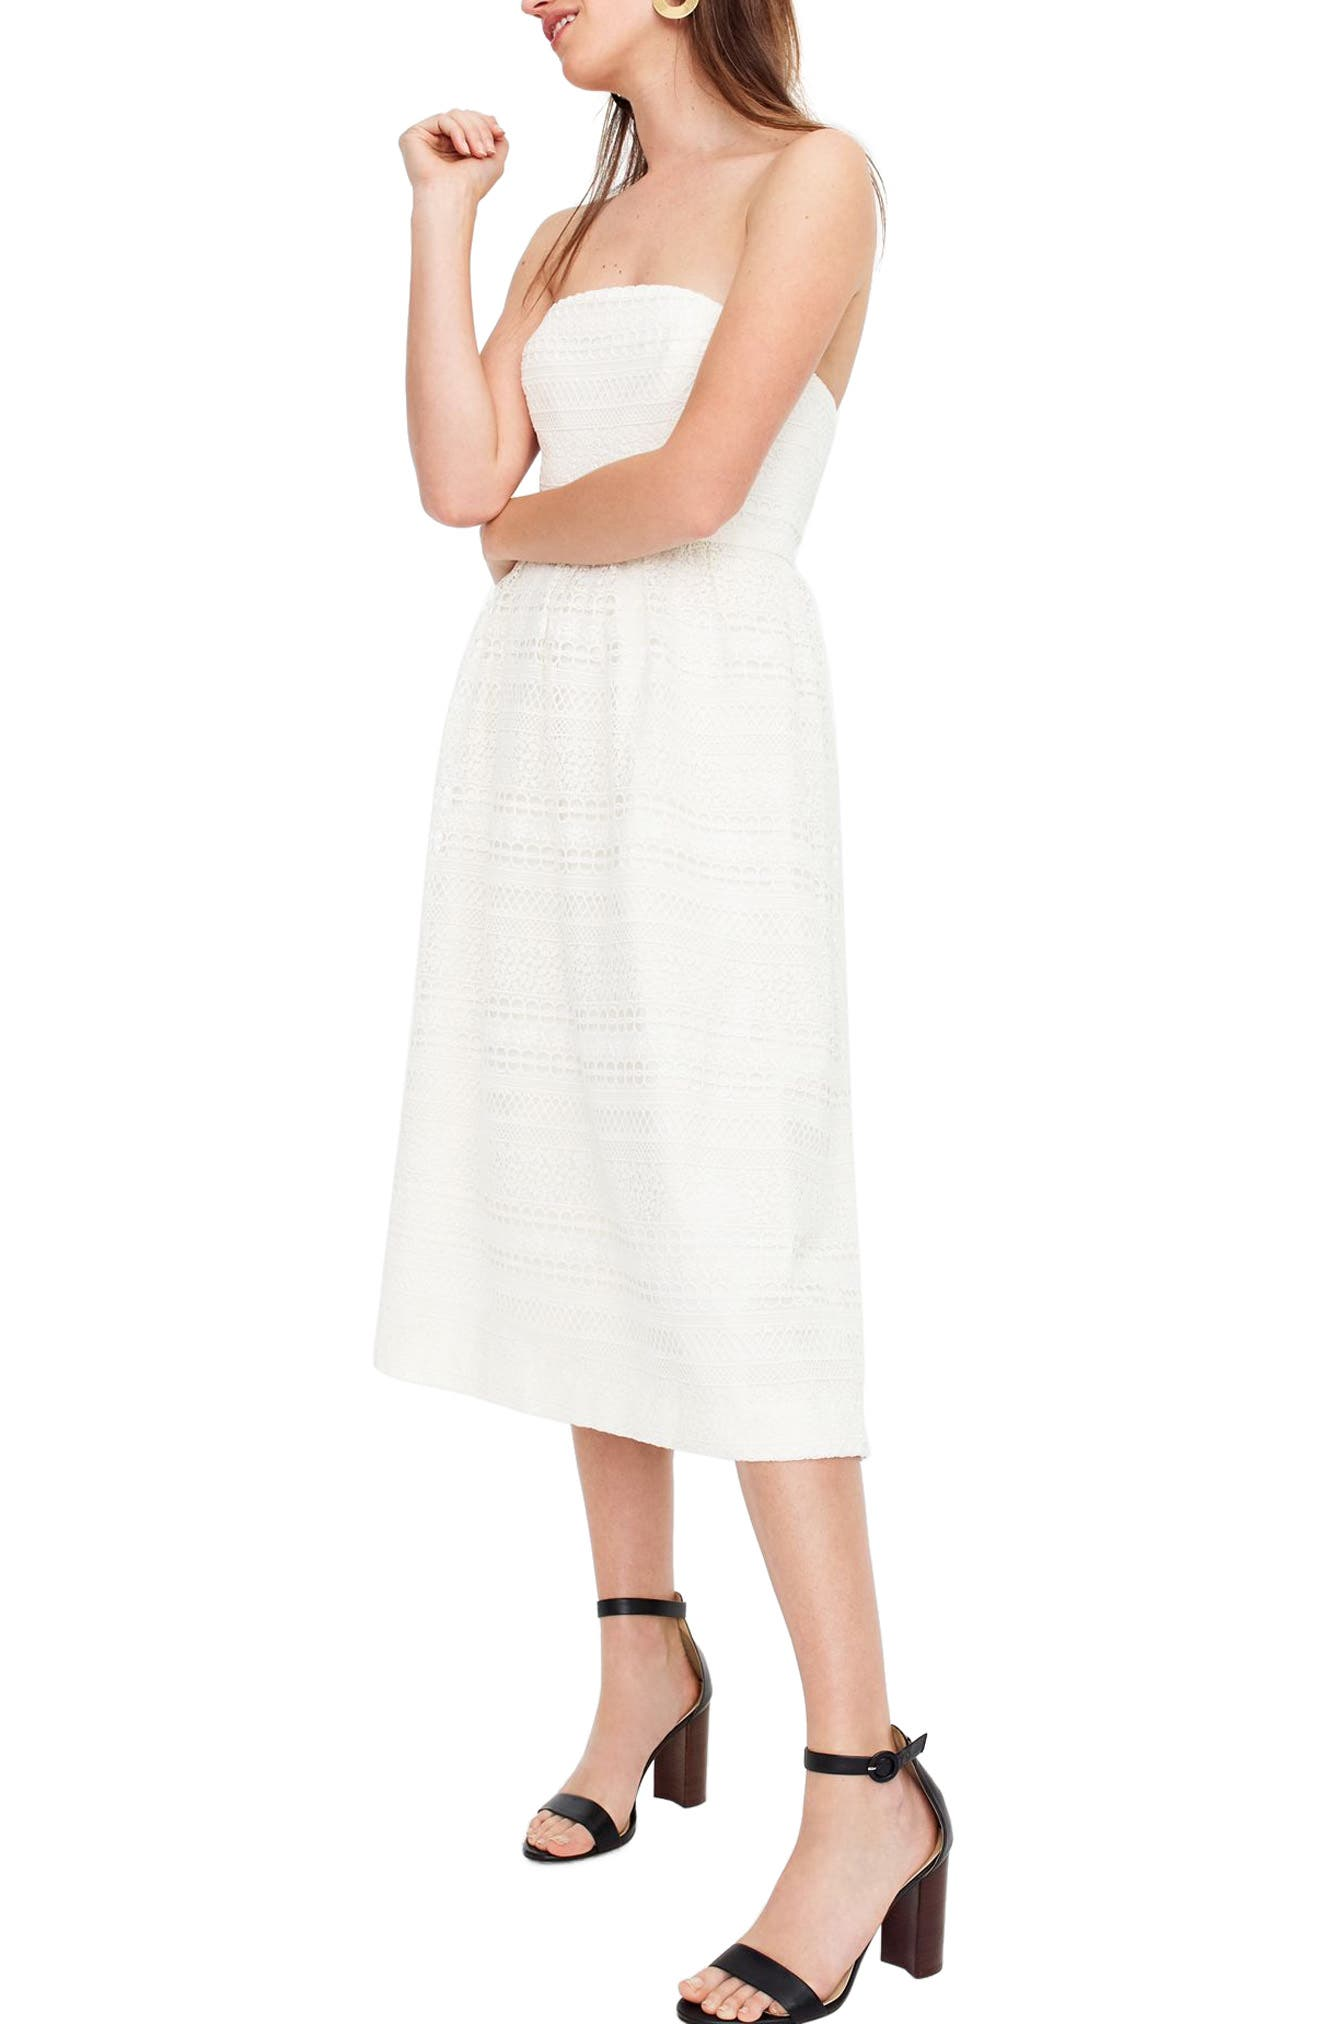 J.Crew Strapless Lace Dress,                         Main,                         color, Ivory